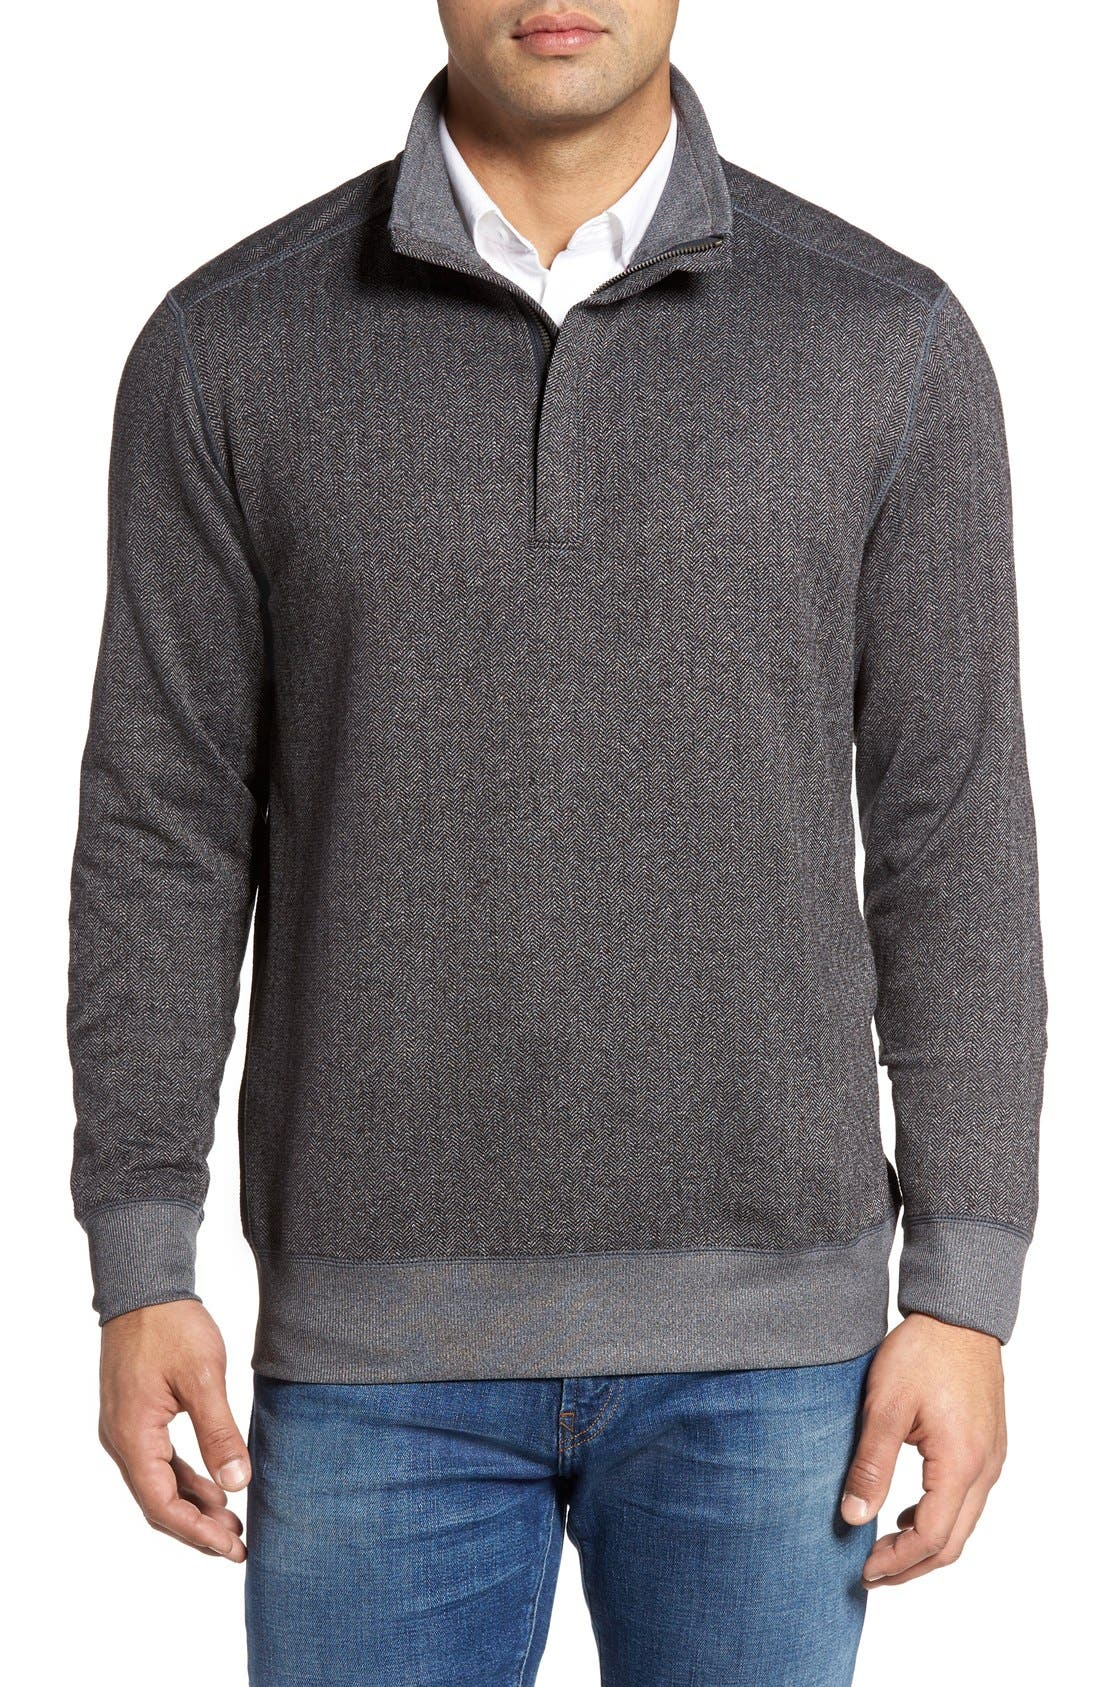 Pro Formance Quarter Zip Sweater,                             Main thumbnail 1, color,                             050